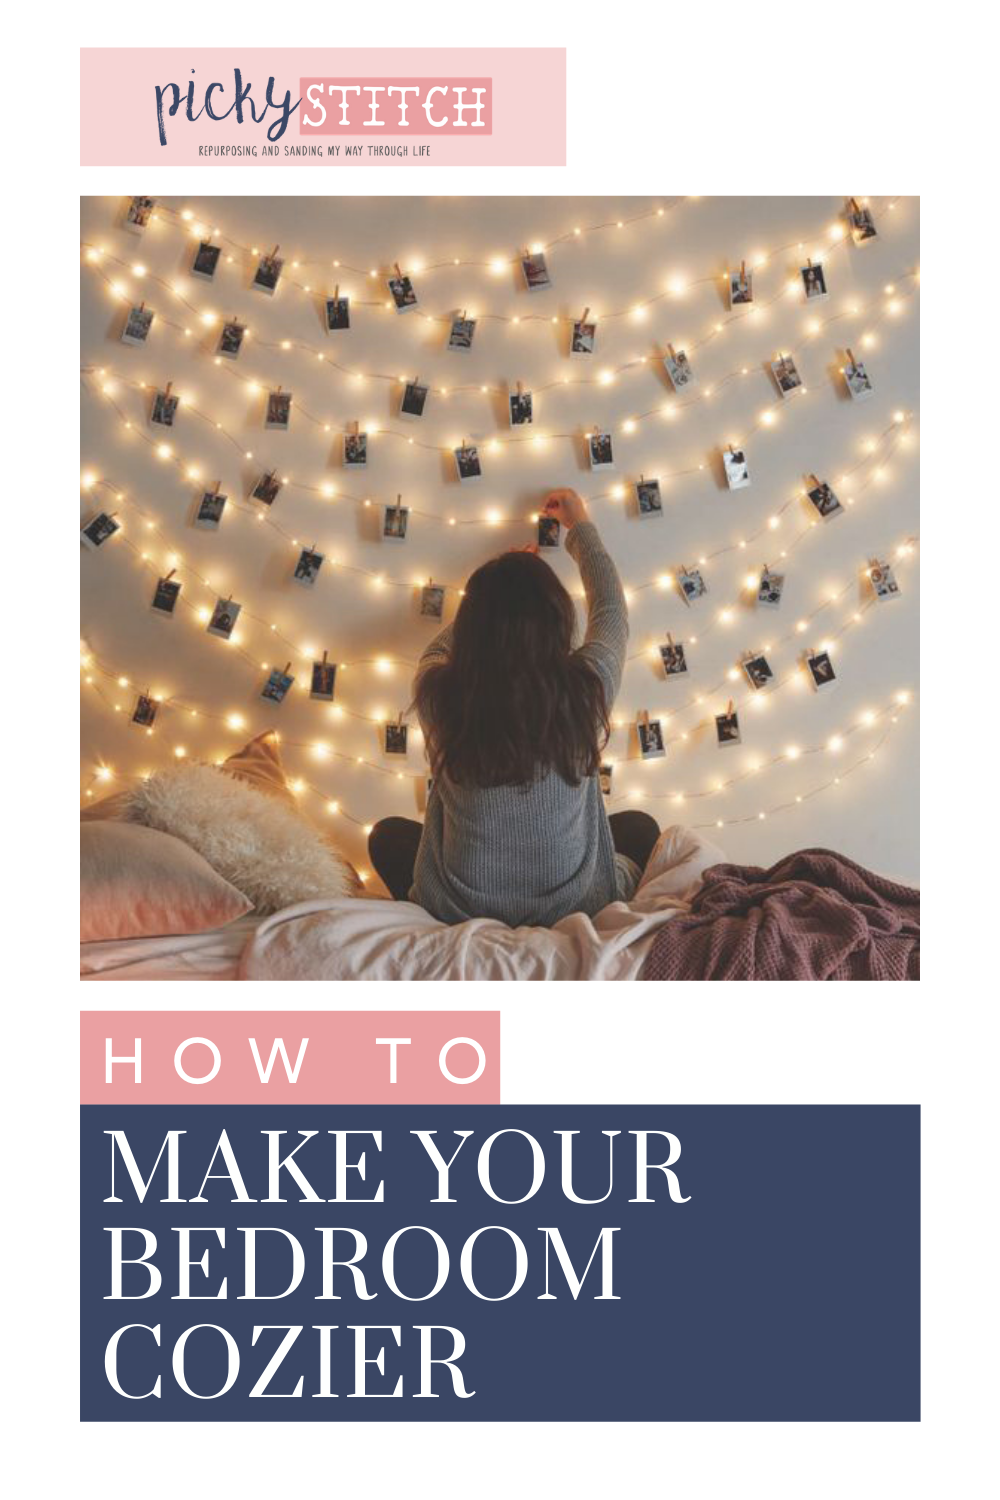 Pickystitch.com knows a thing or two about hands-on projects. Find ways to spruce up any space instantly. These ideas will have your bedroom feeling cozier in a flash.